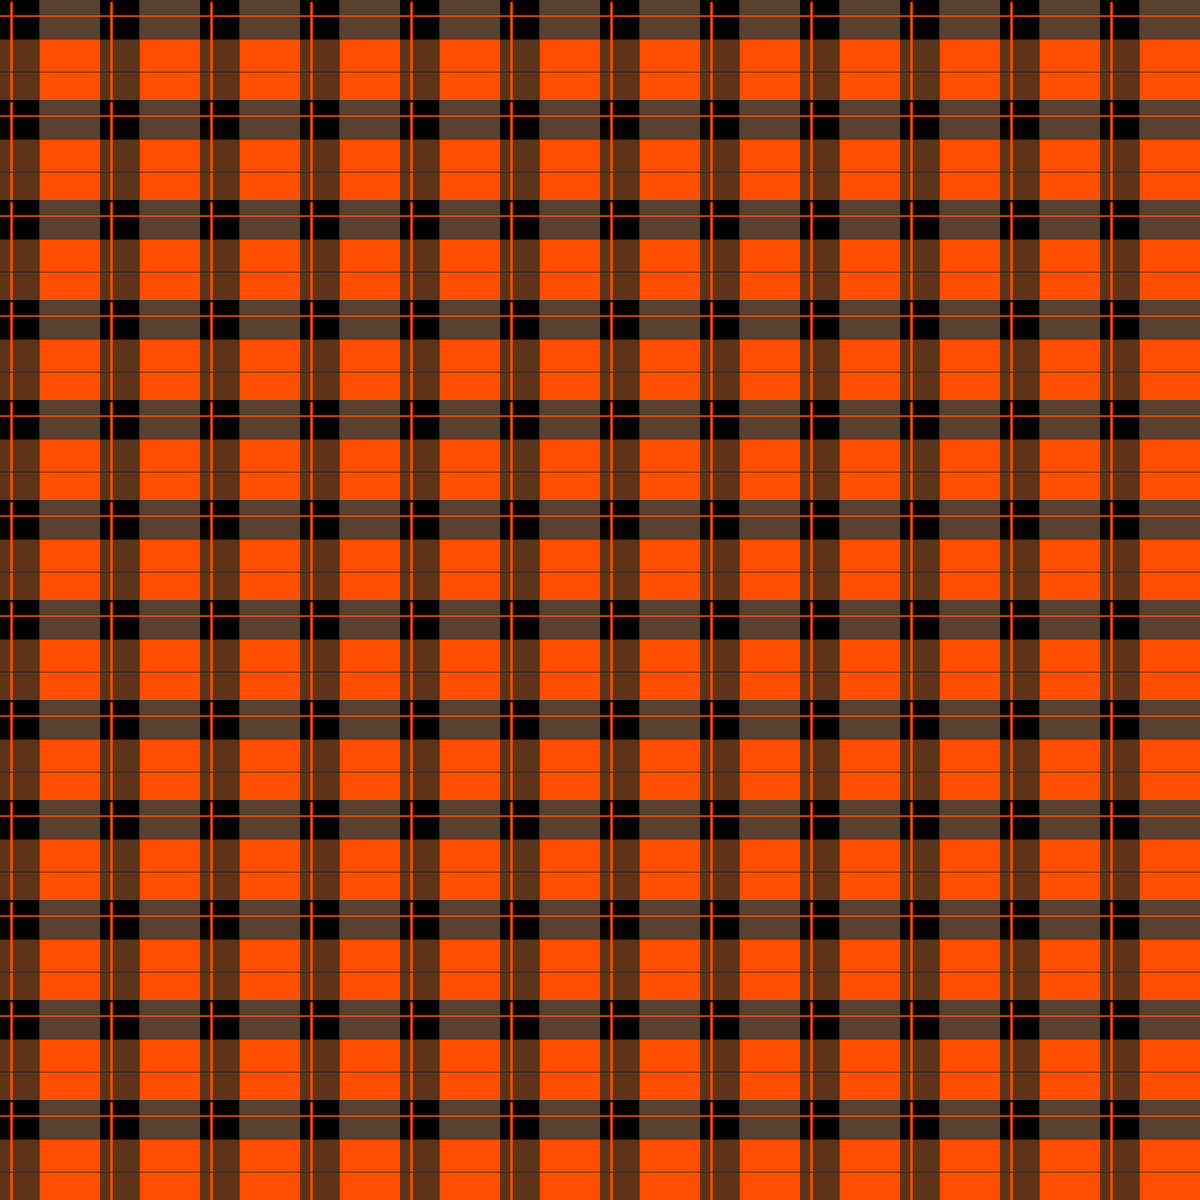 Free digital plaid pattern scrapbooking papers - ausdruckbares ...